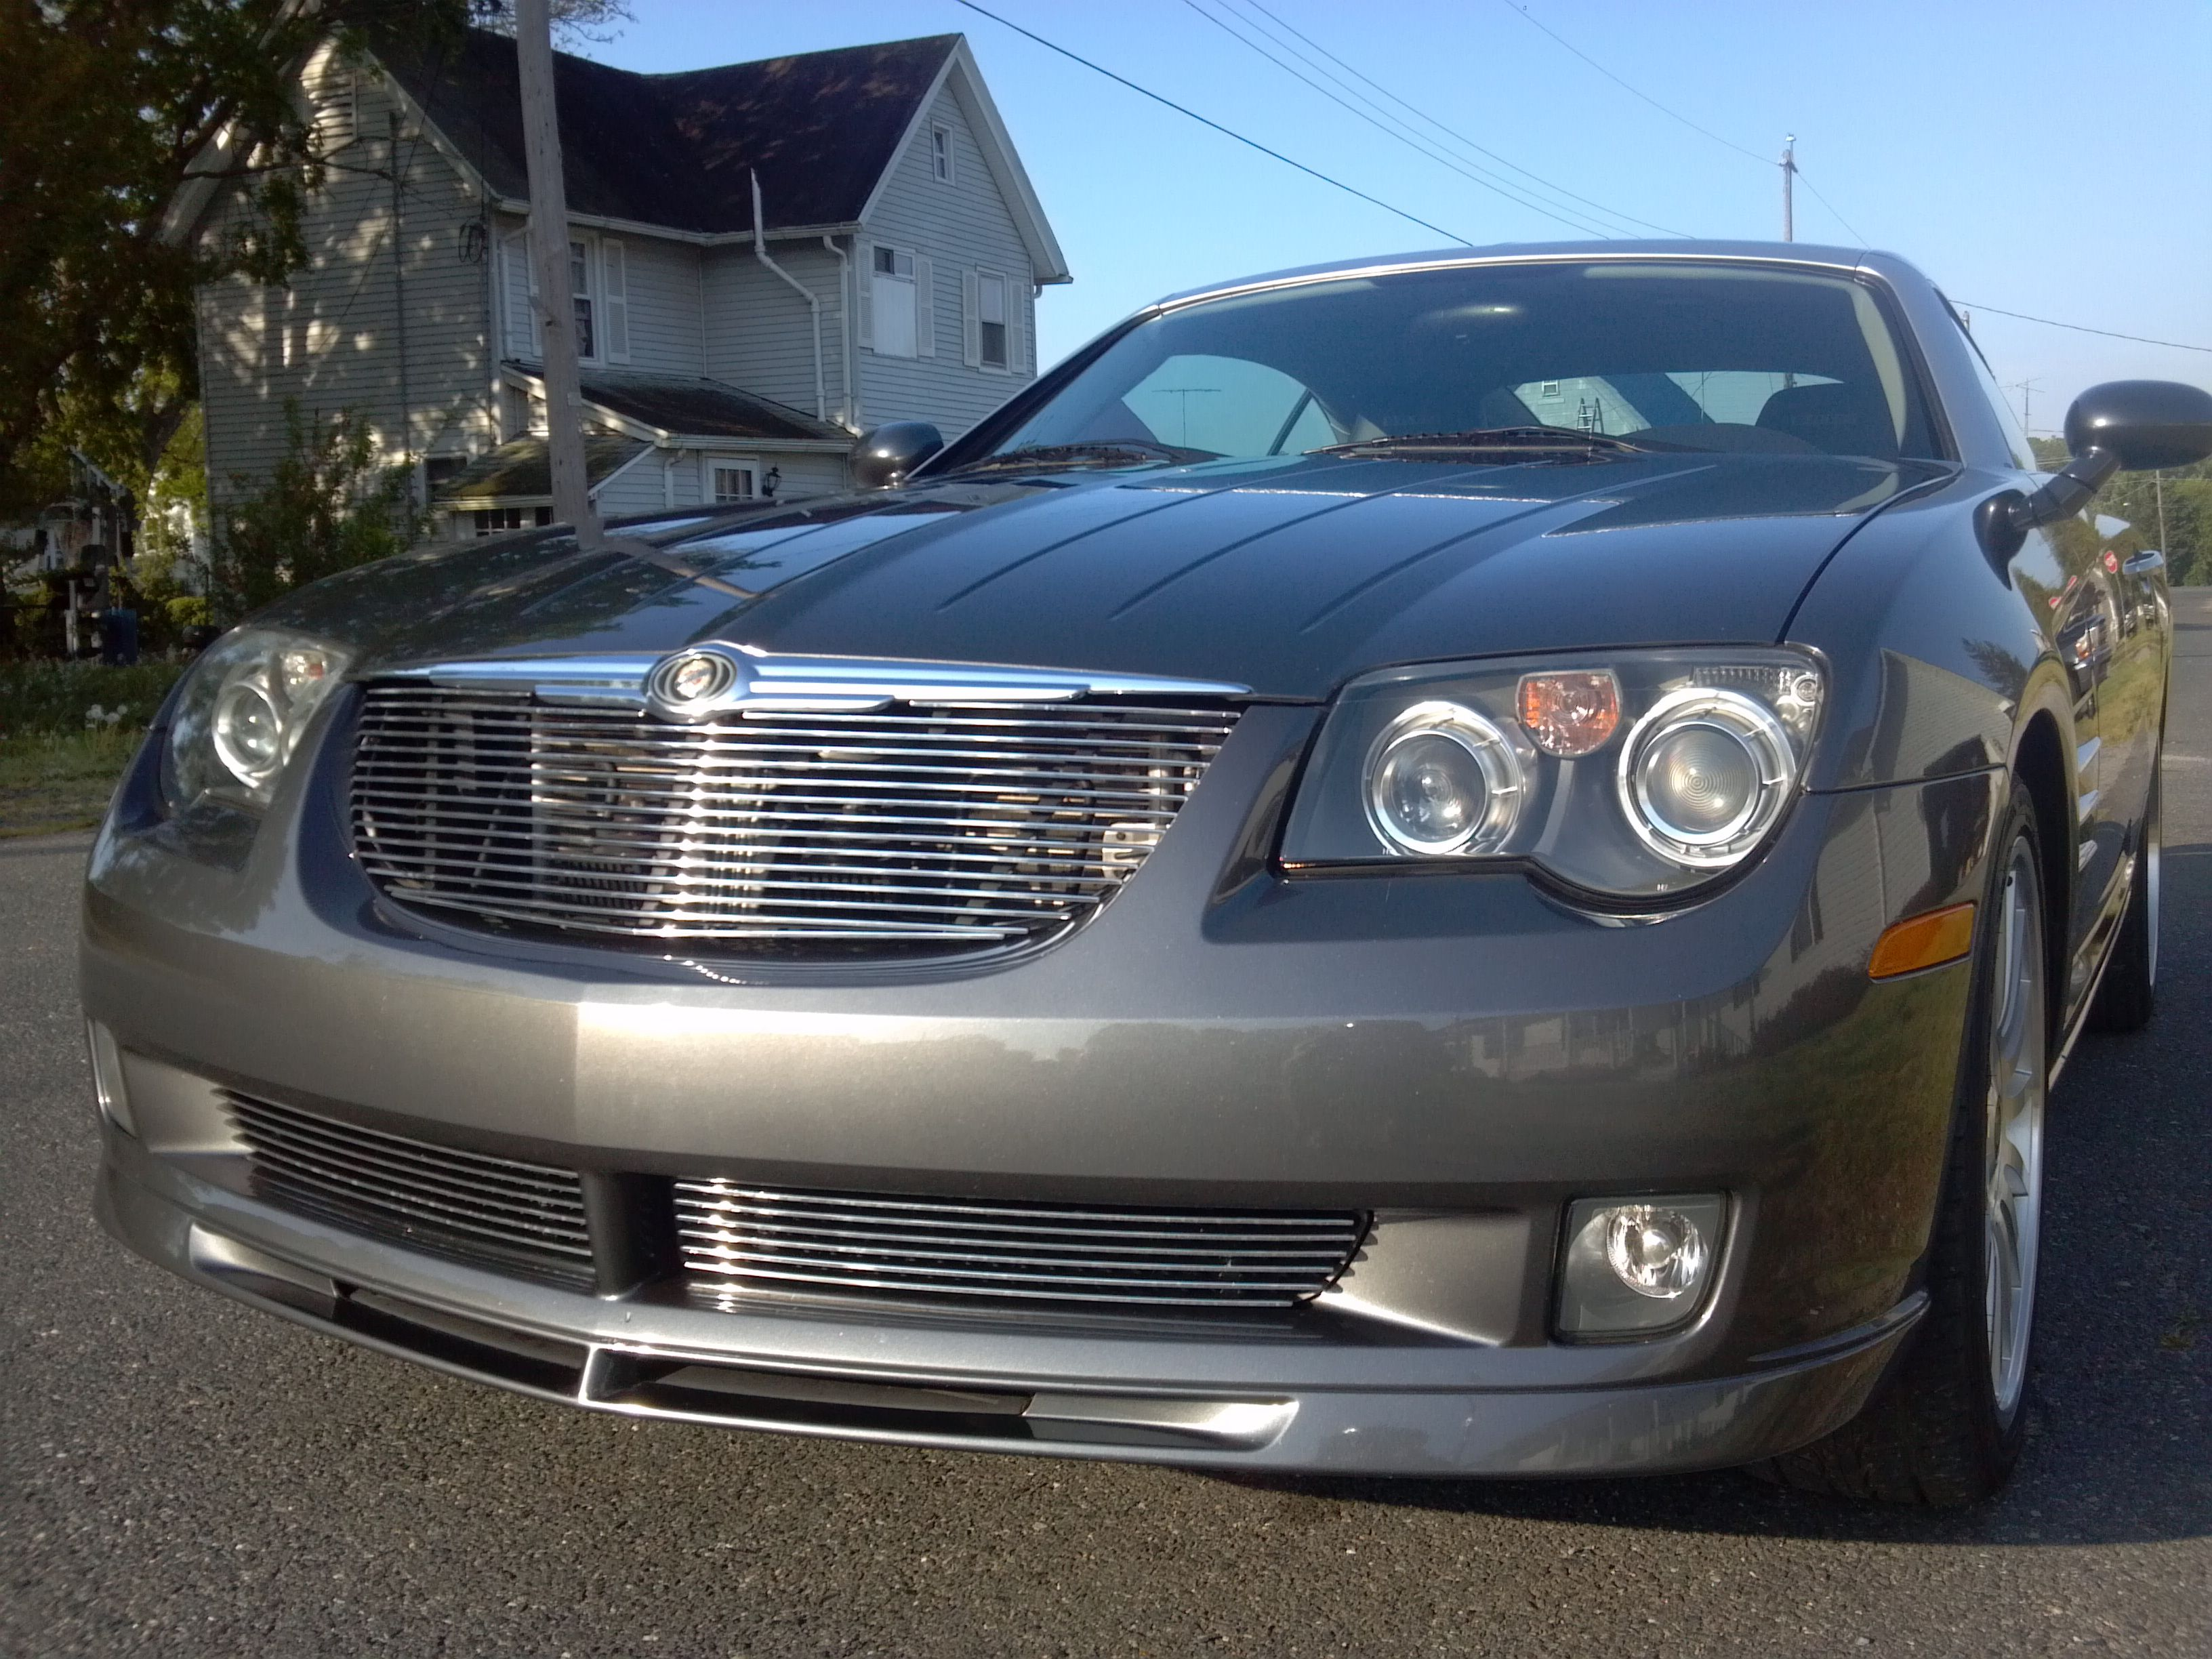 Chrysler Crossfire Srt6 With Billet Grille Polished By Genx Trims